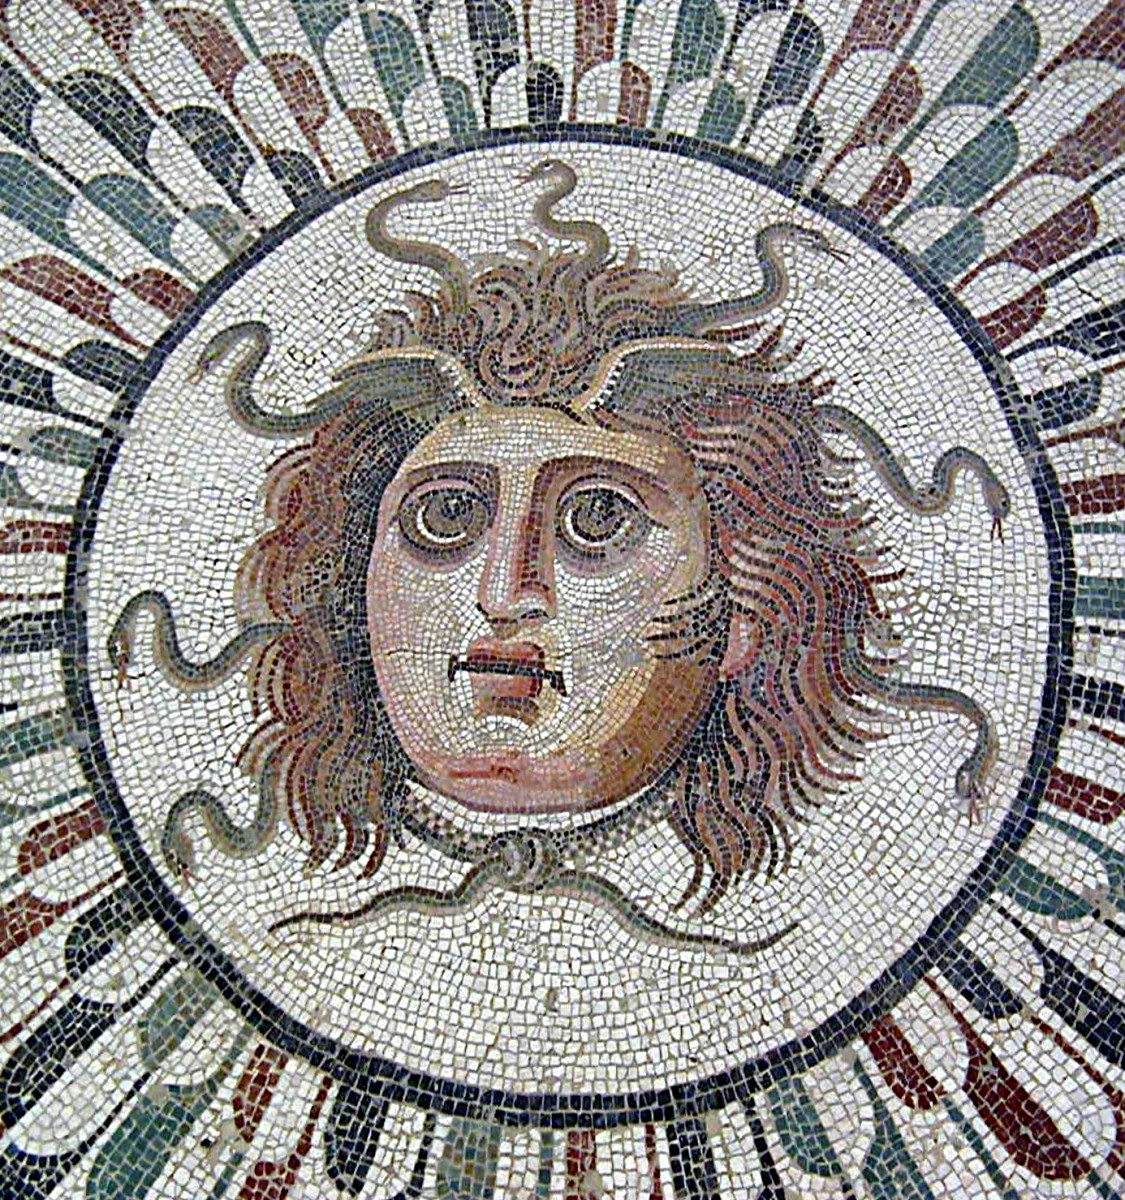 The Greek Myth of how Perseus Killed the Gorgon Medusa